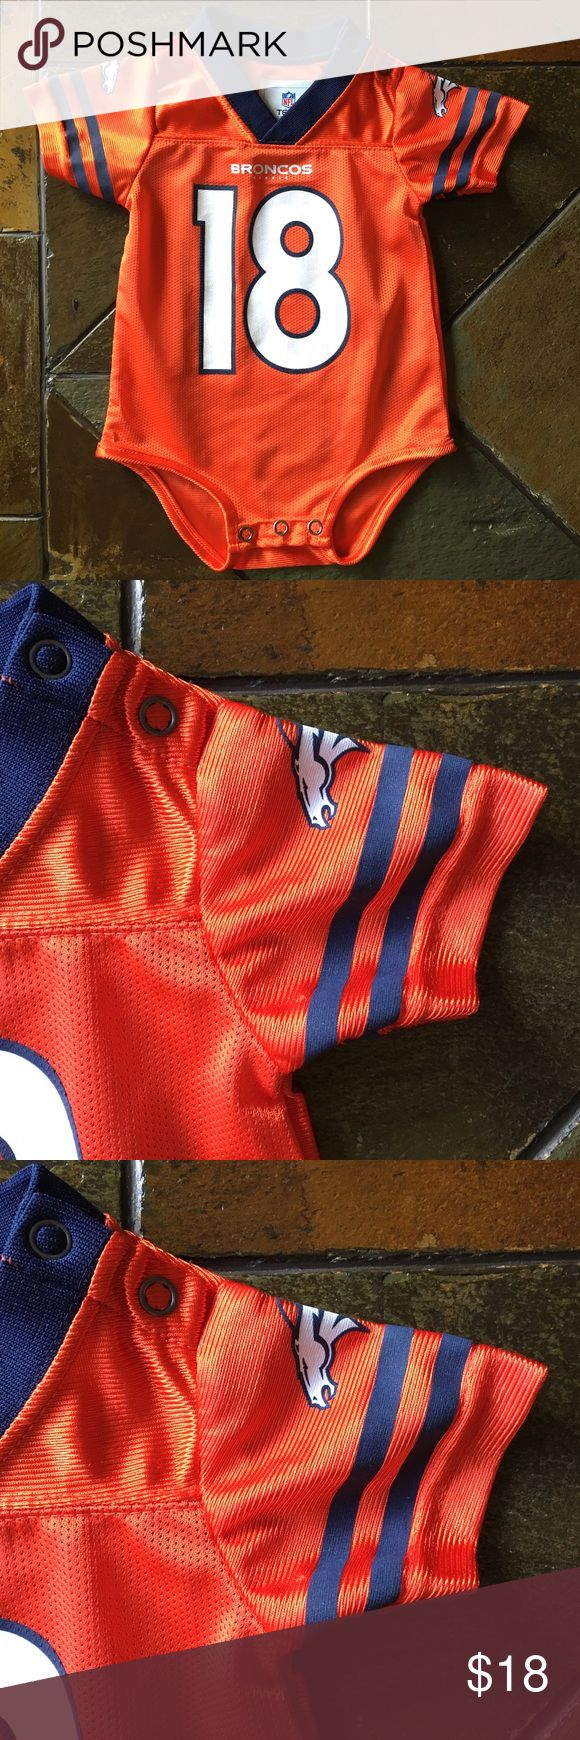 Peyton Manning one piece football Baby 0-3 Months This is a great little Peyton Manning one piece shirt in size 0-3 Months.  Worn Once, looks new!  Orange with Manning in the back.  By NFL teams. NFL Teams Shirts & Tops